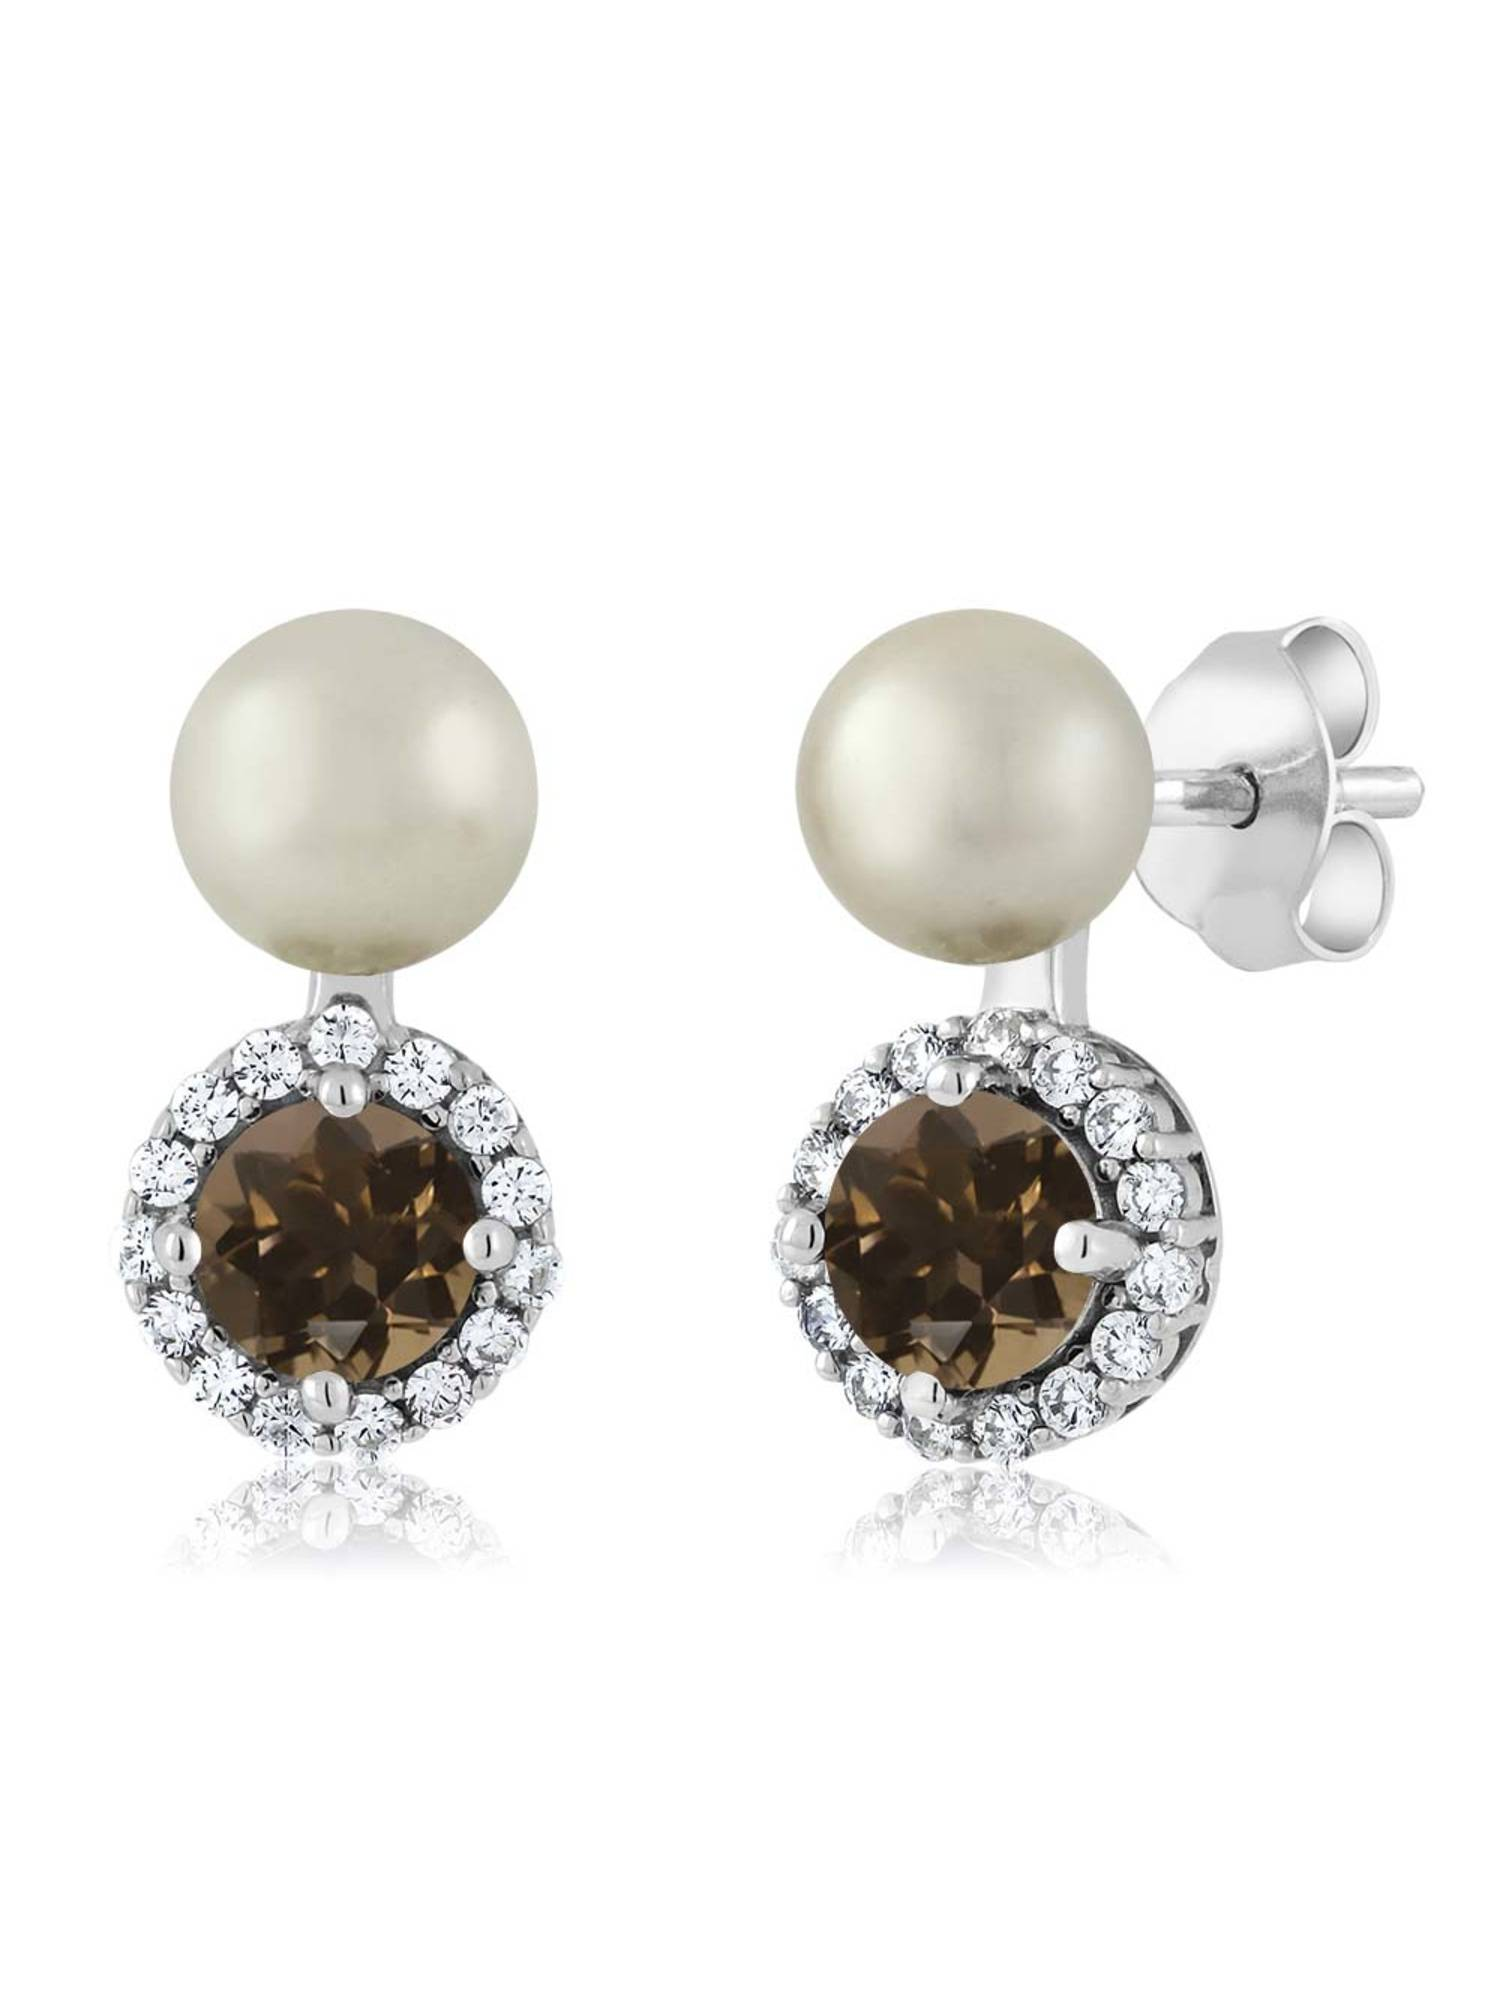 1.22 Ct Round Brown Smoky Quartz Cultured Freshwater Pearl 925 Silver Earrings